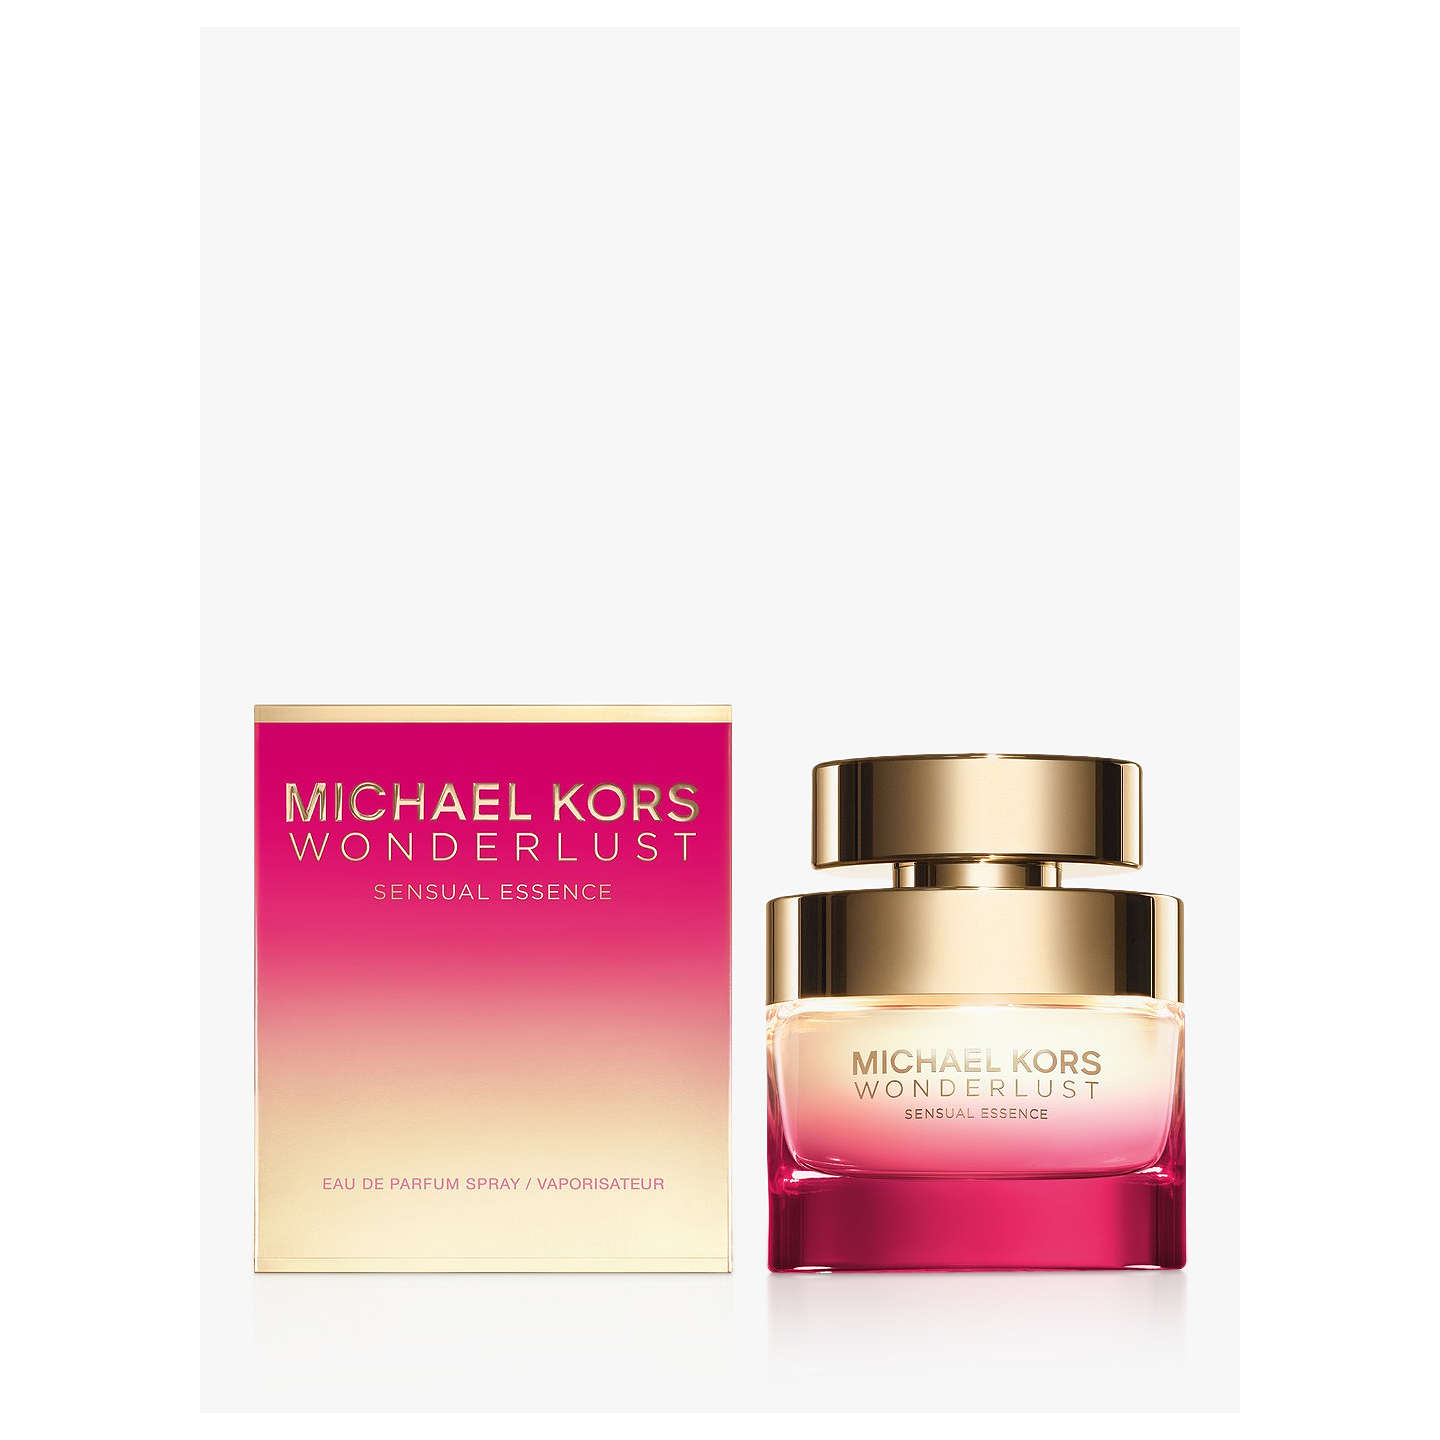 BuyMichael Kors Wonderlust Sensual Essence Eau de Parfum, 50ml Online at johnlewis.com